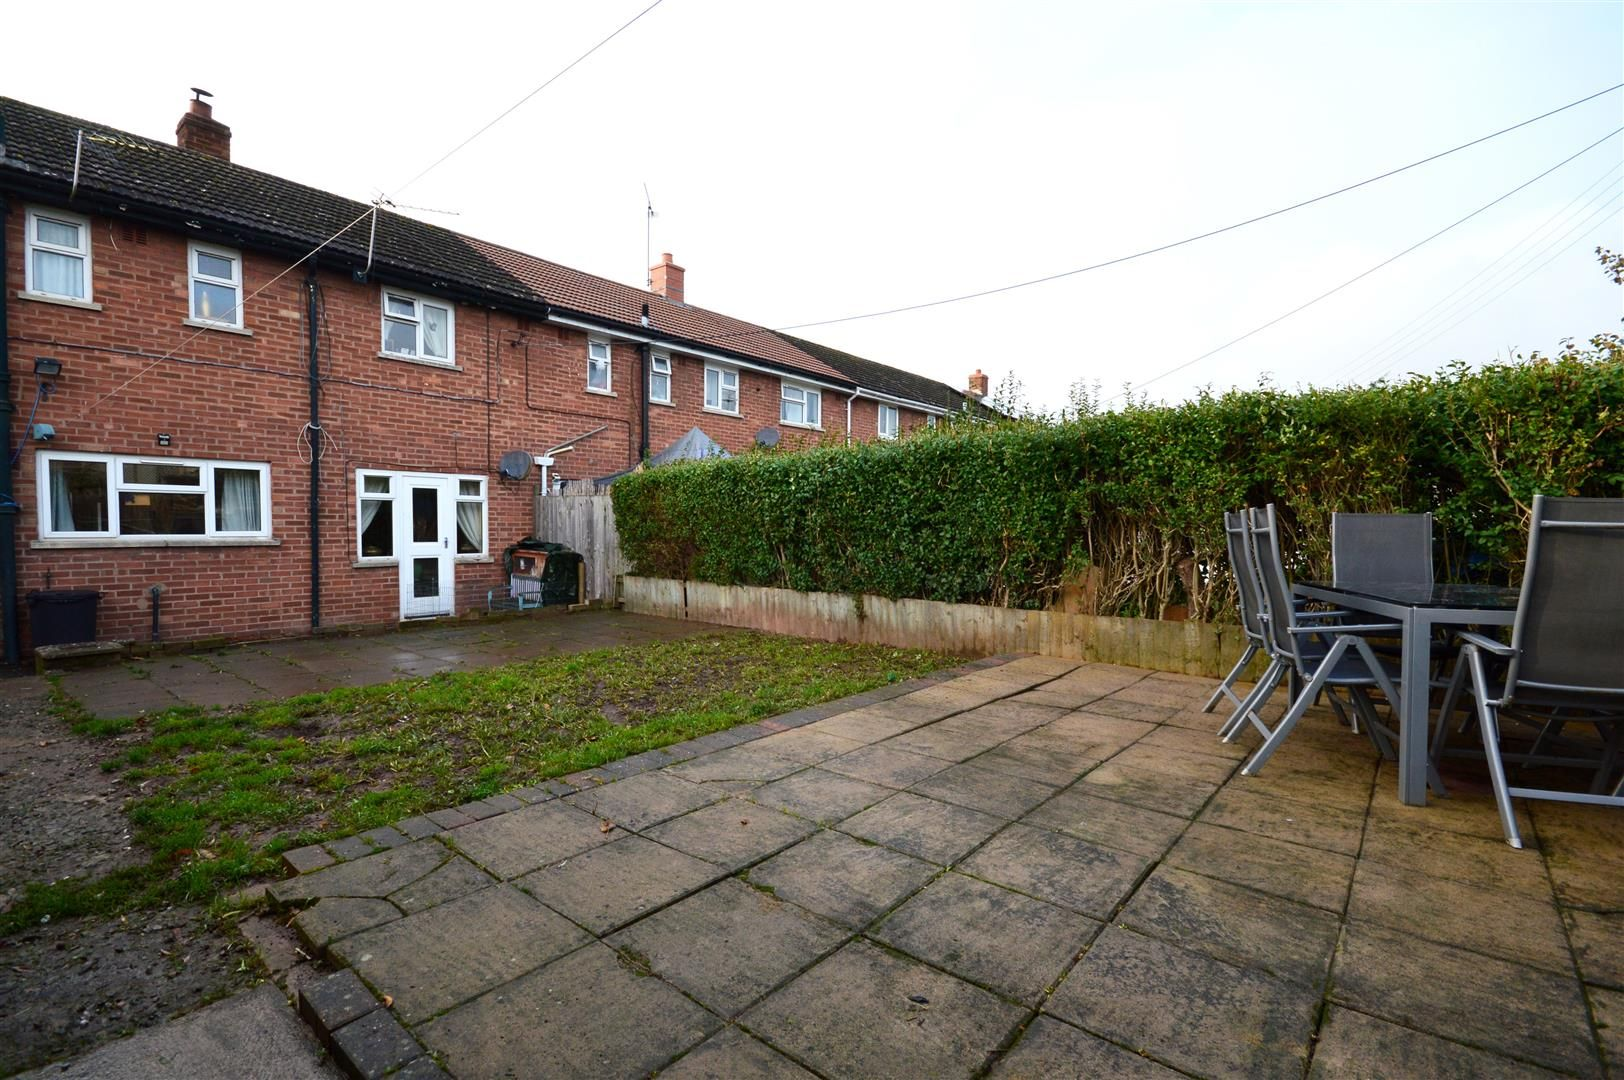 3 bed terraced for sale in Weobley  - Property Image 8